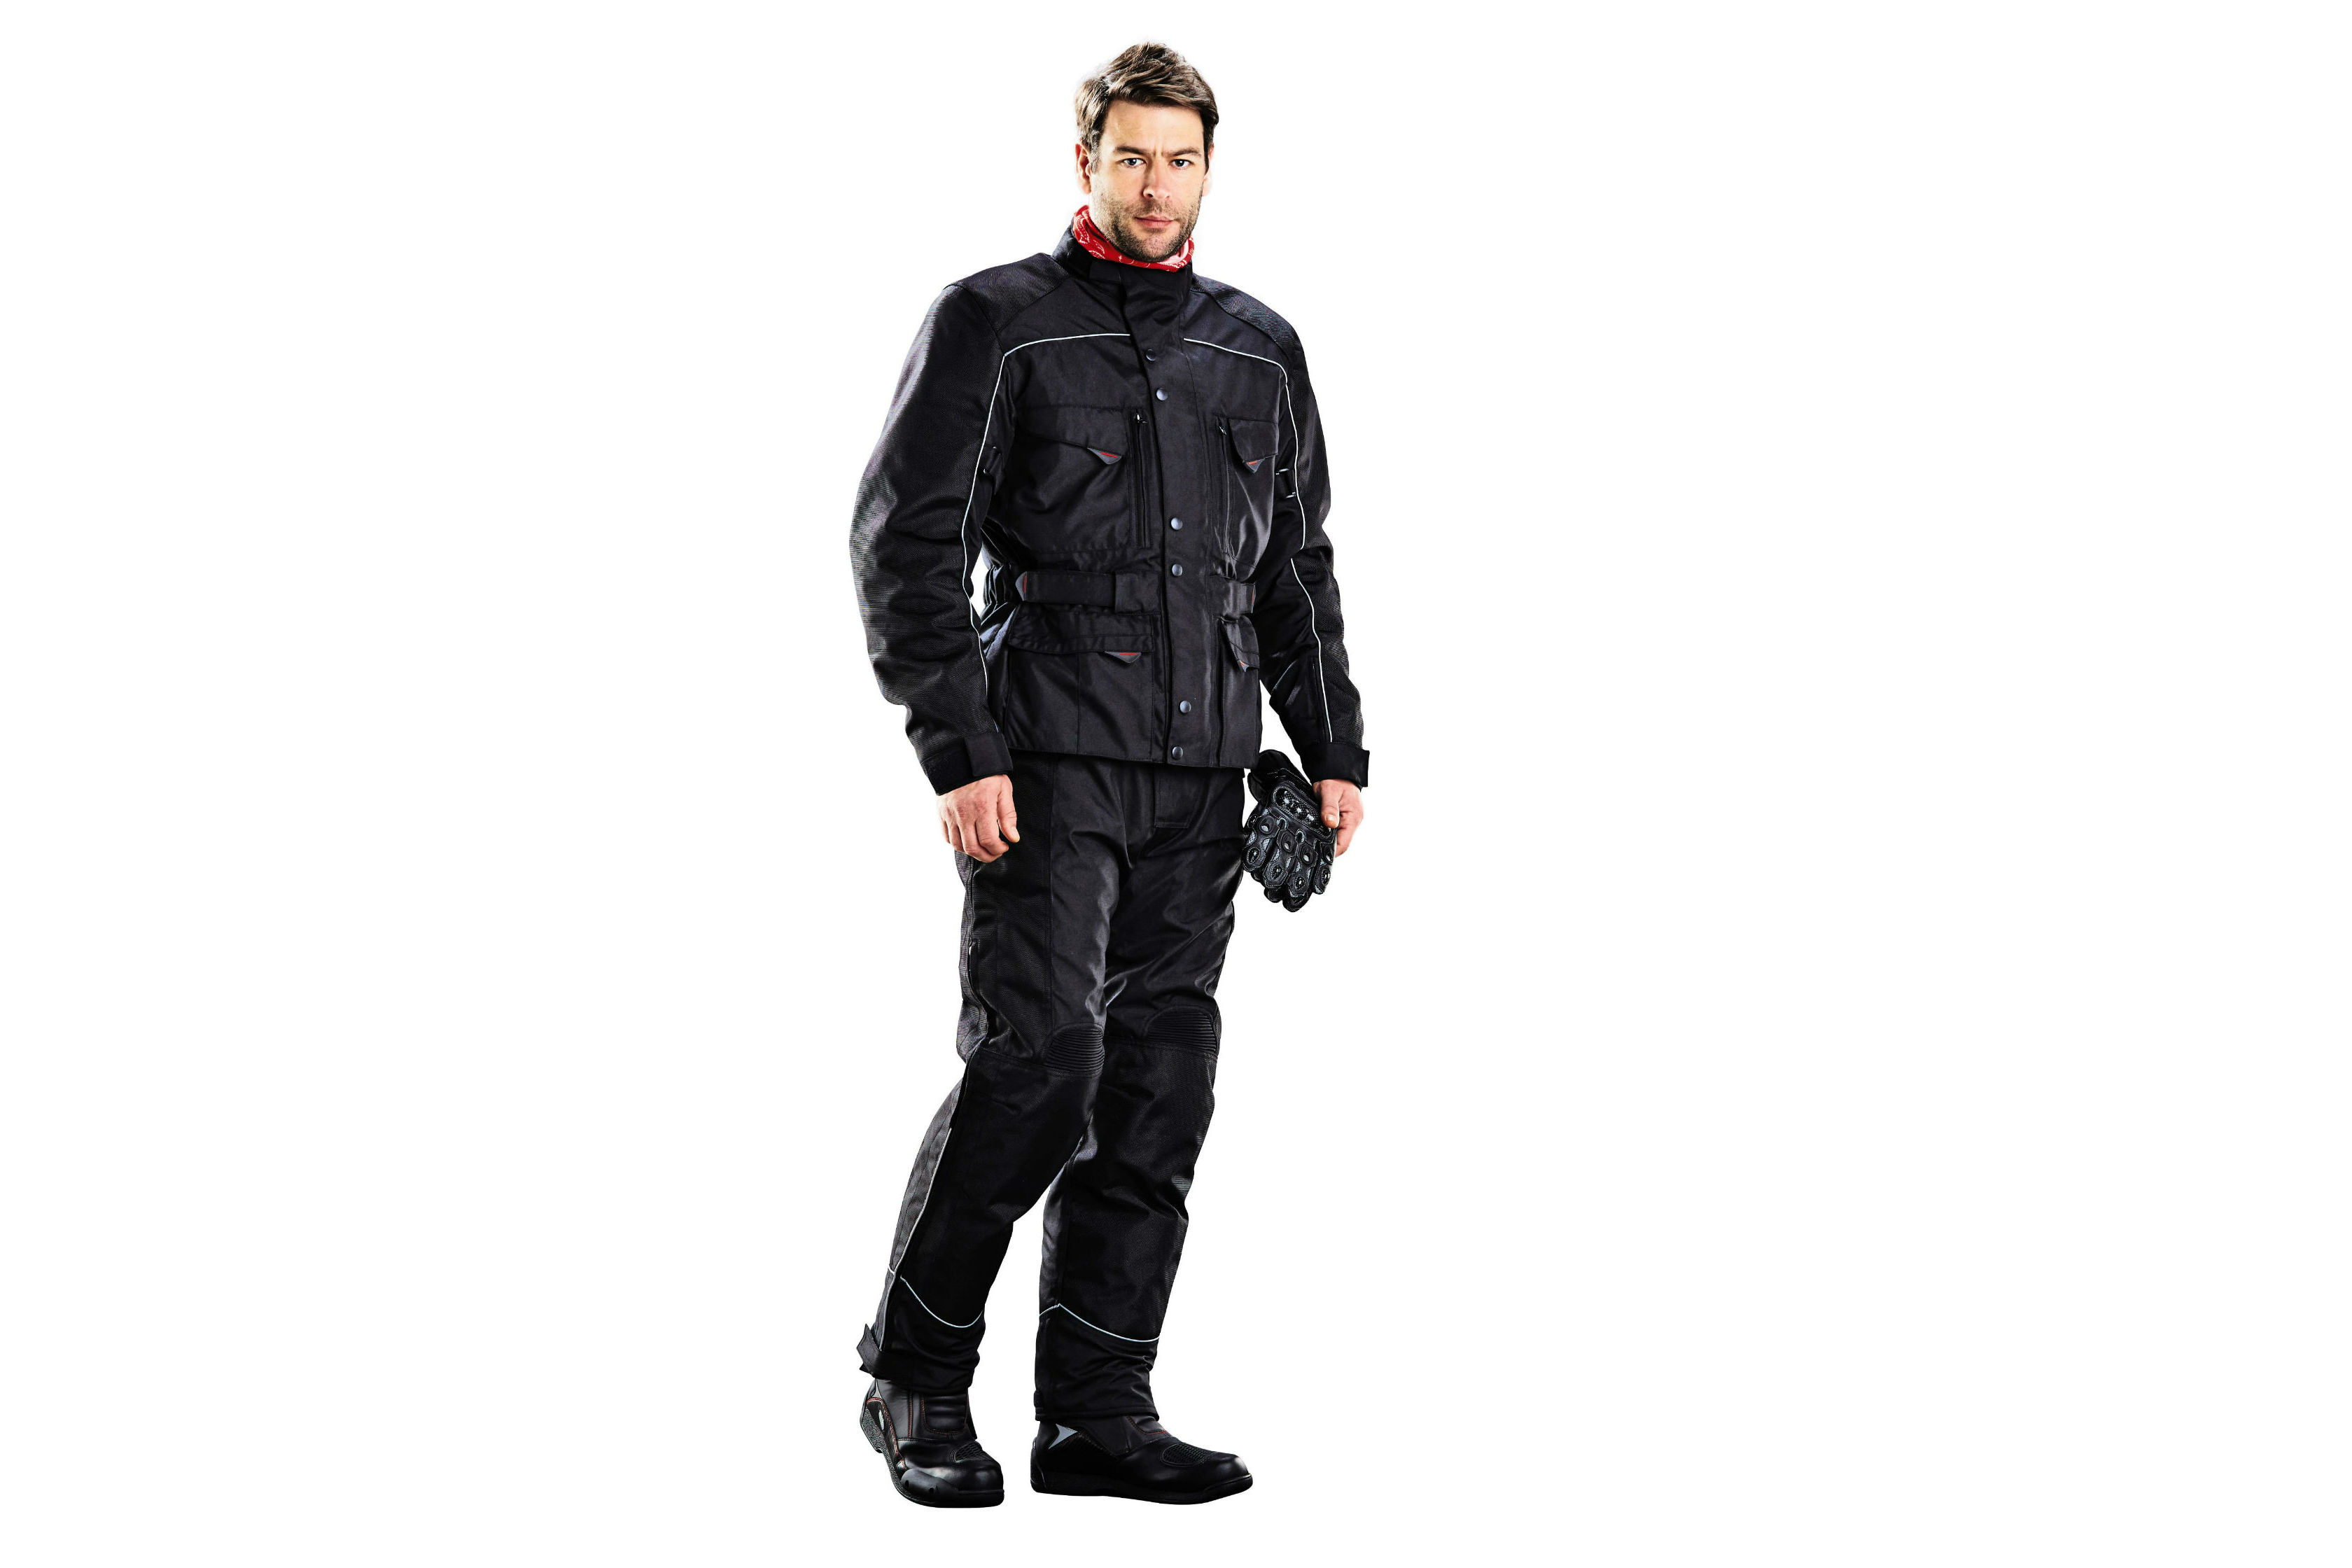 New Aldi motorcycle clothing range launched